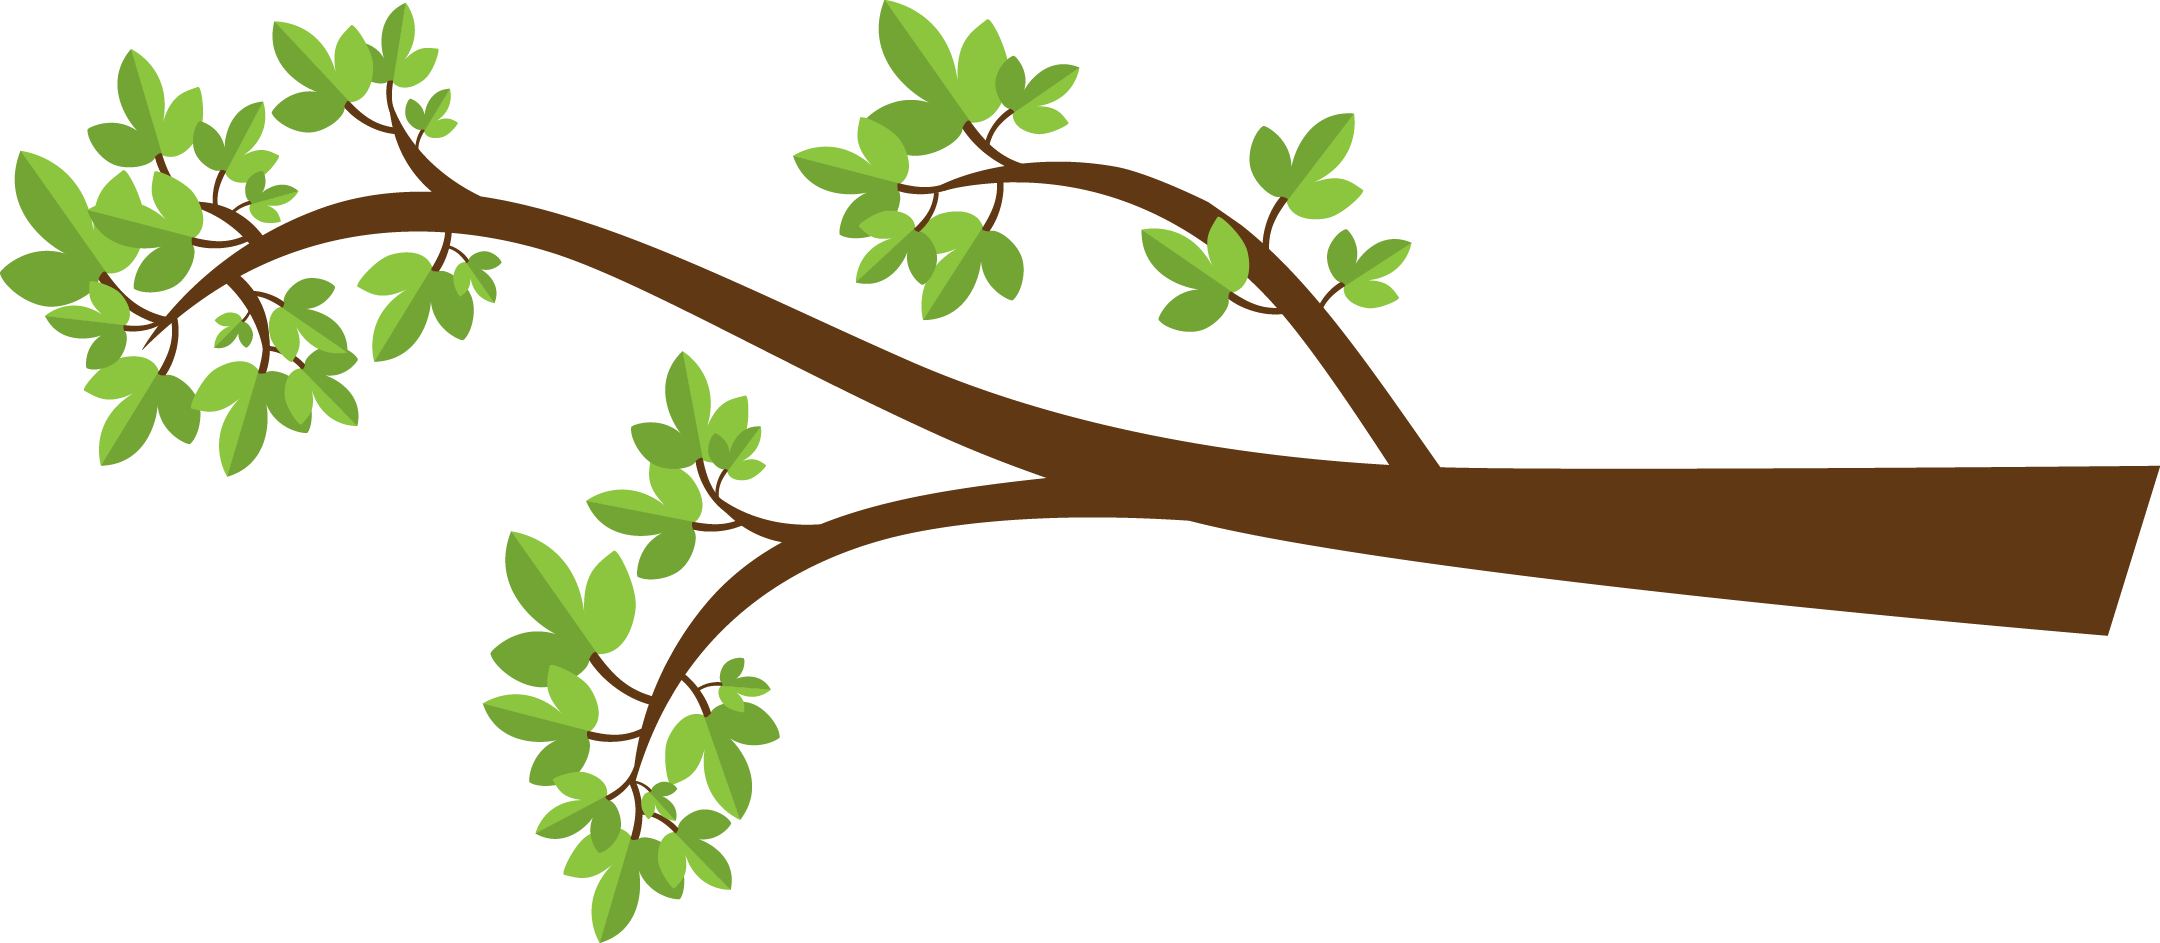 Branch clipart png. Collection of tree